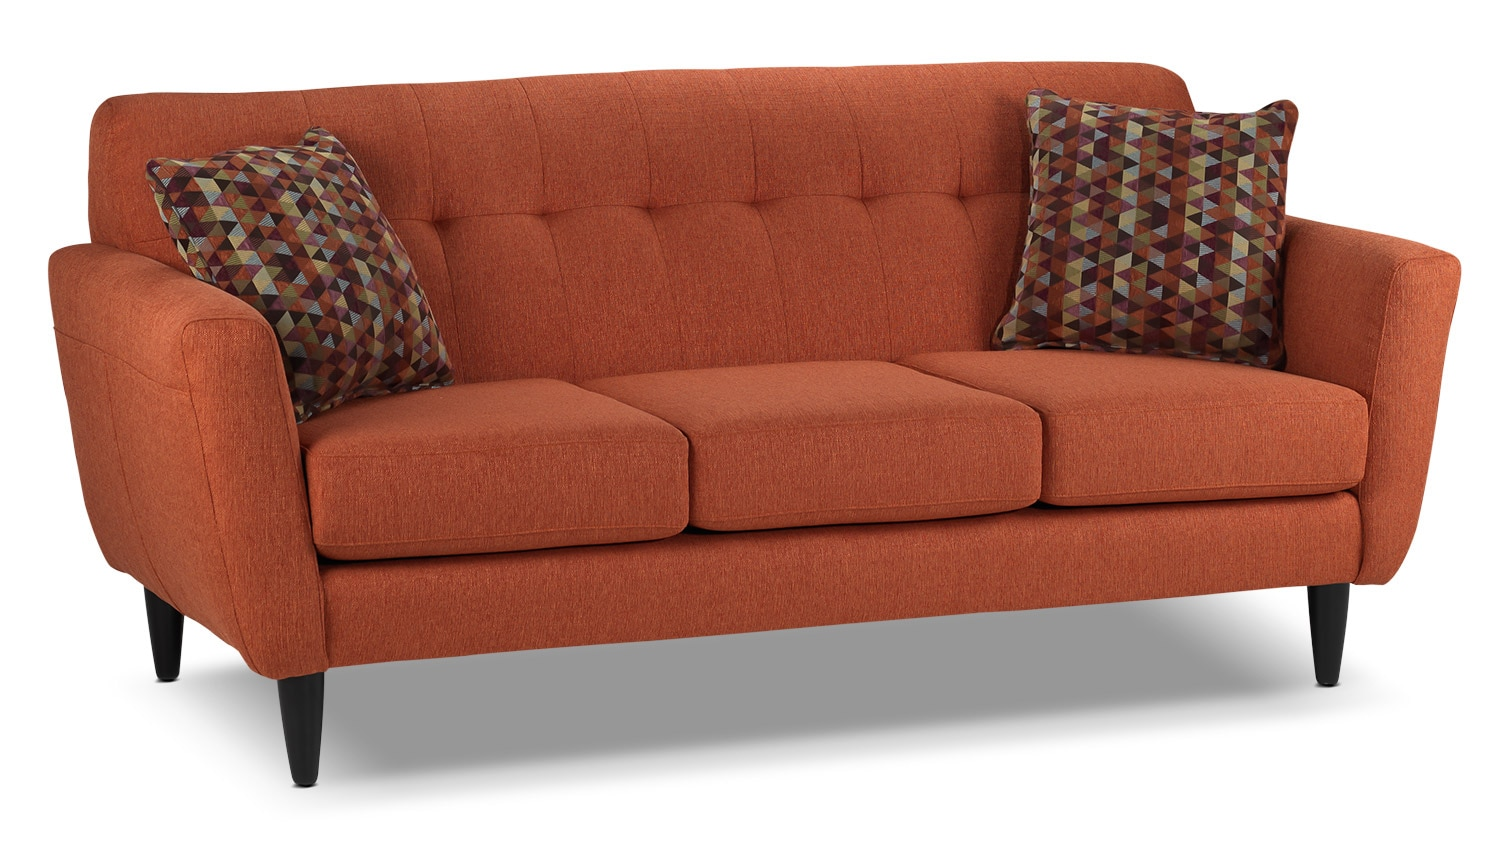 orange color sofa comfortable sleeper leather cobra leon 39s